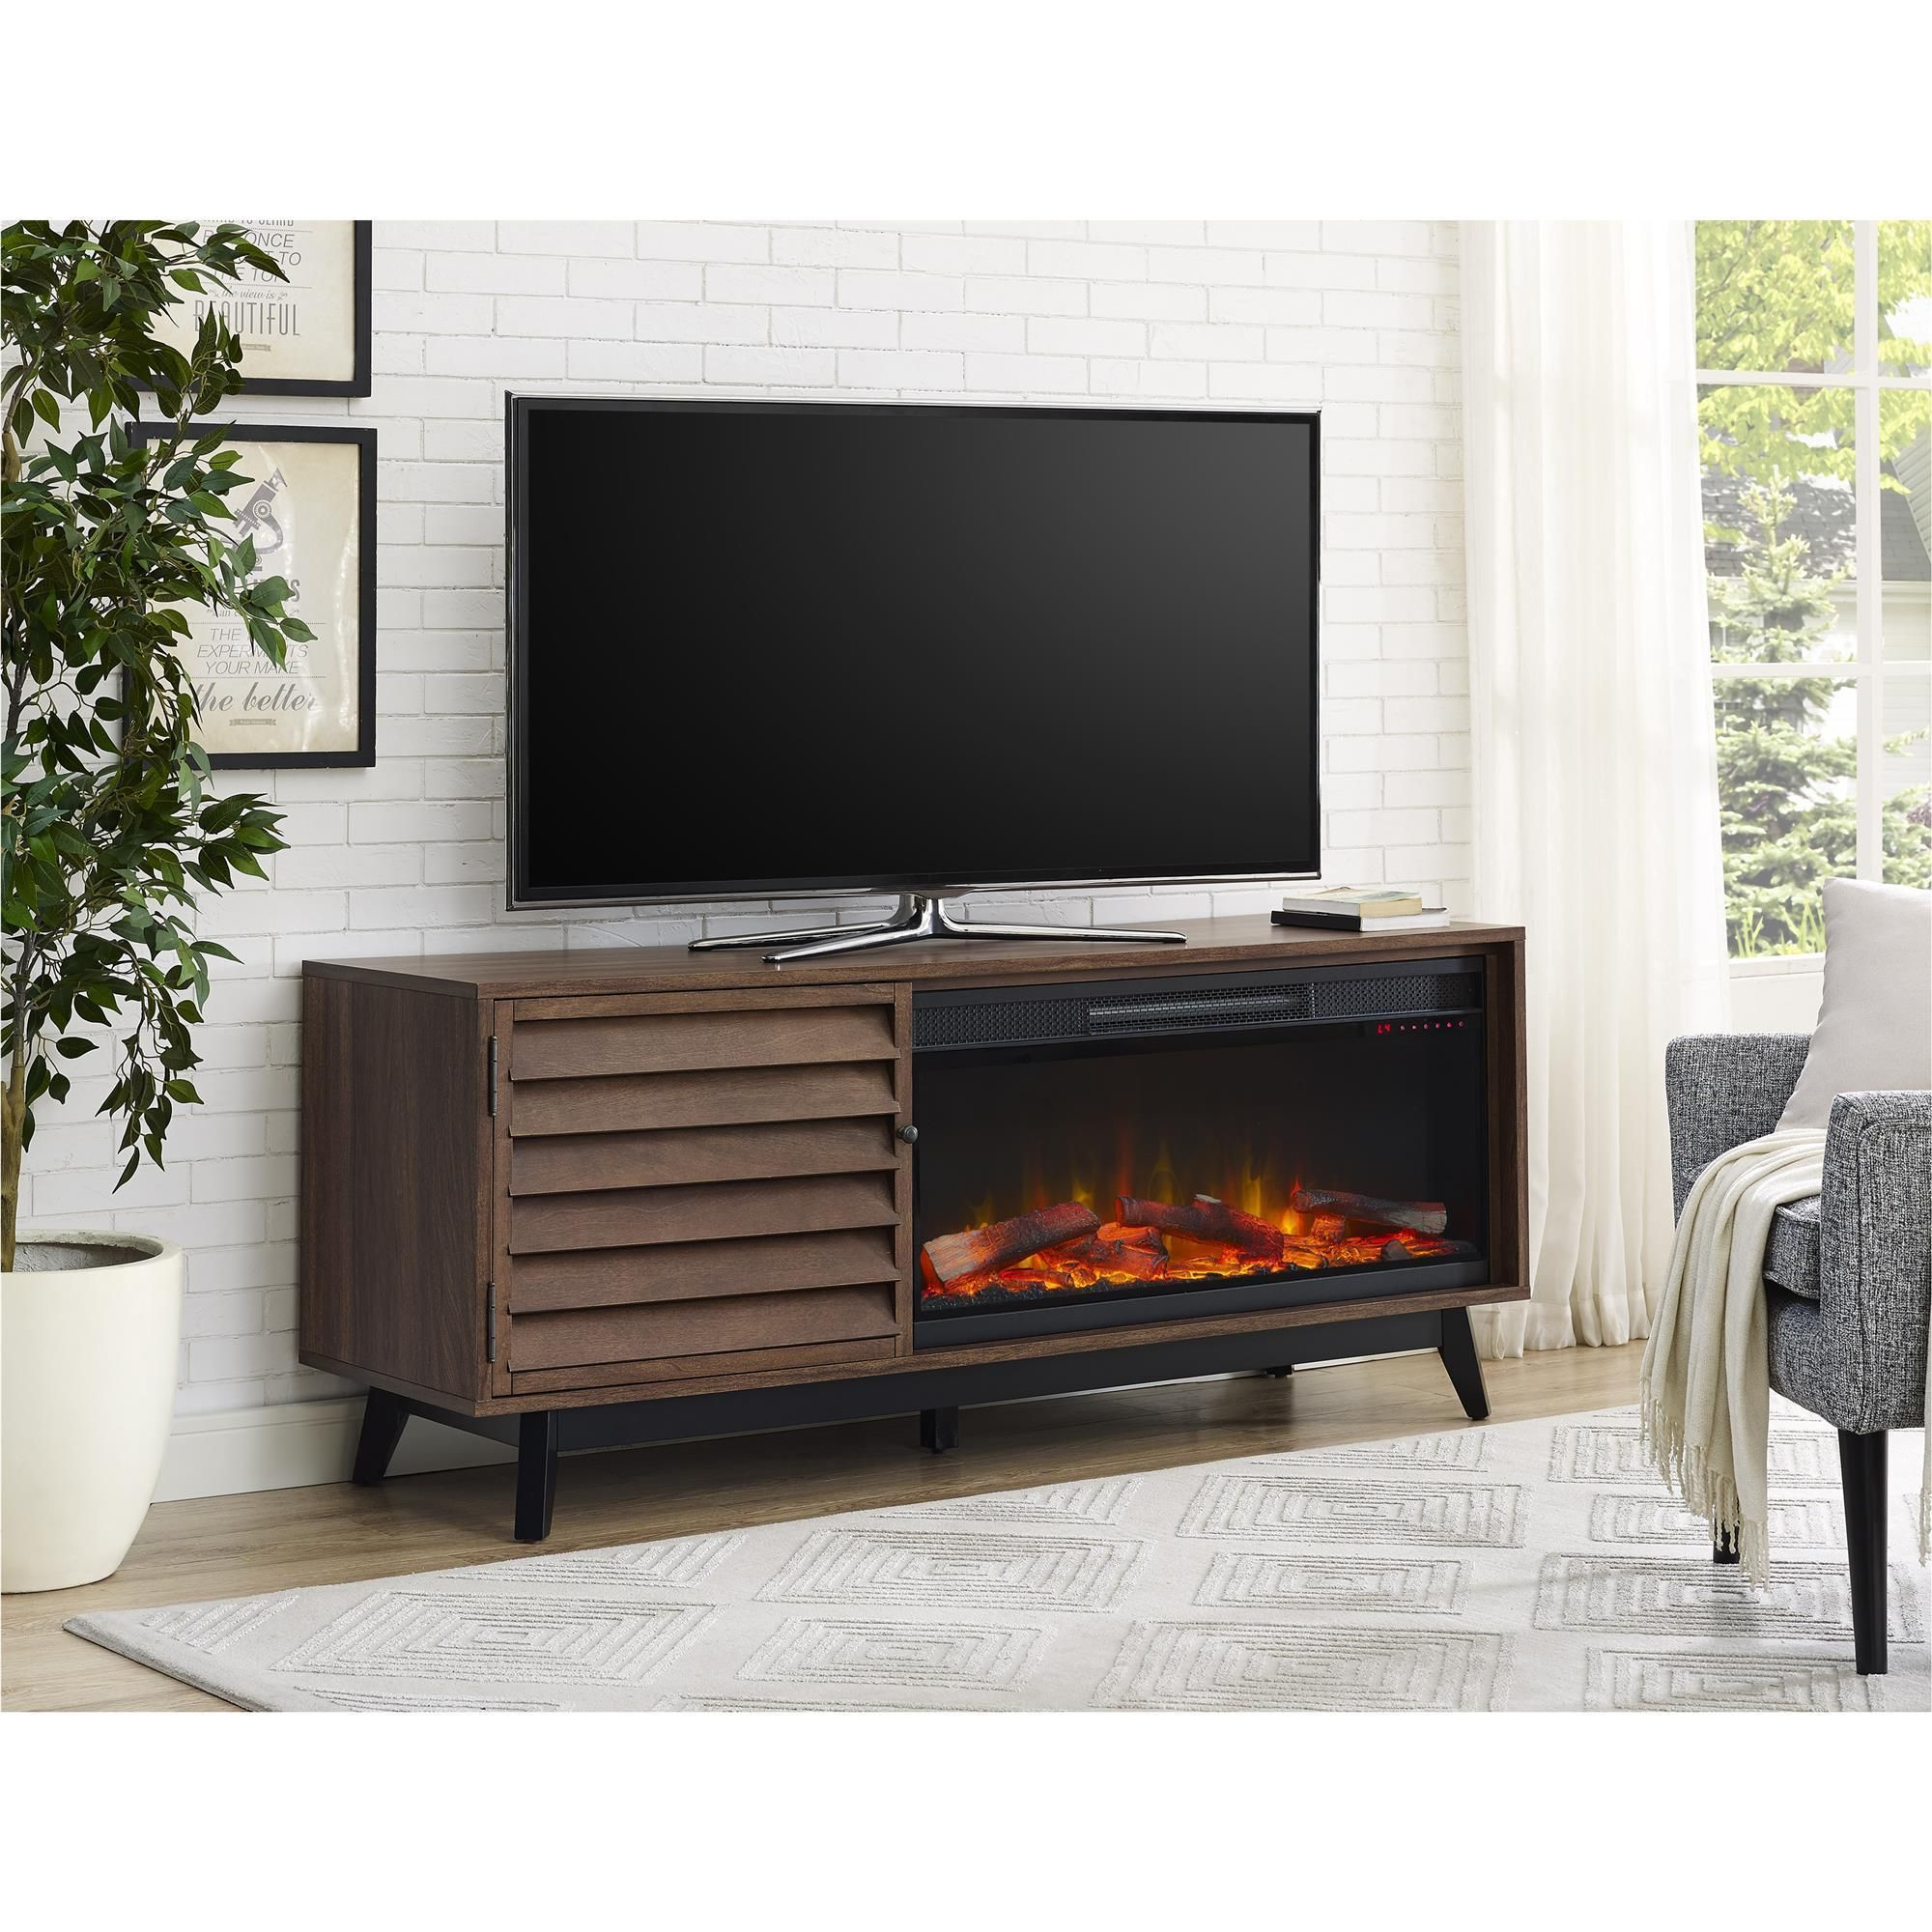 ameriwood home vaughn fireplace tv console for tvs up to 60 inches